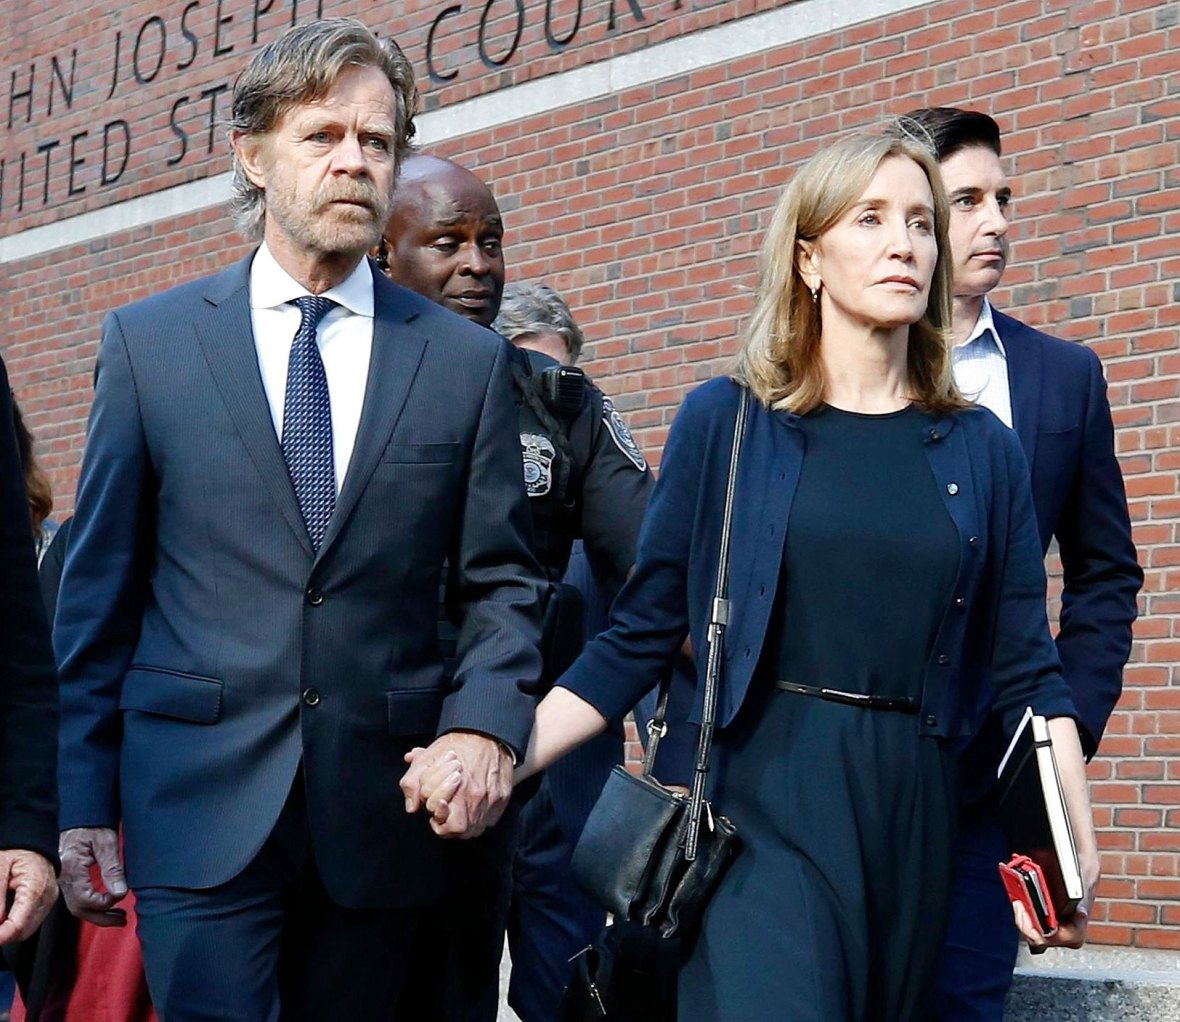 William H Macy and Felicity Huffman Leaving Court Netflix Operation Varsity Blues Everything You Need to Know About College Scandal-Inspired Documentary